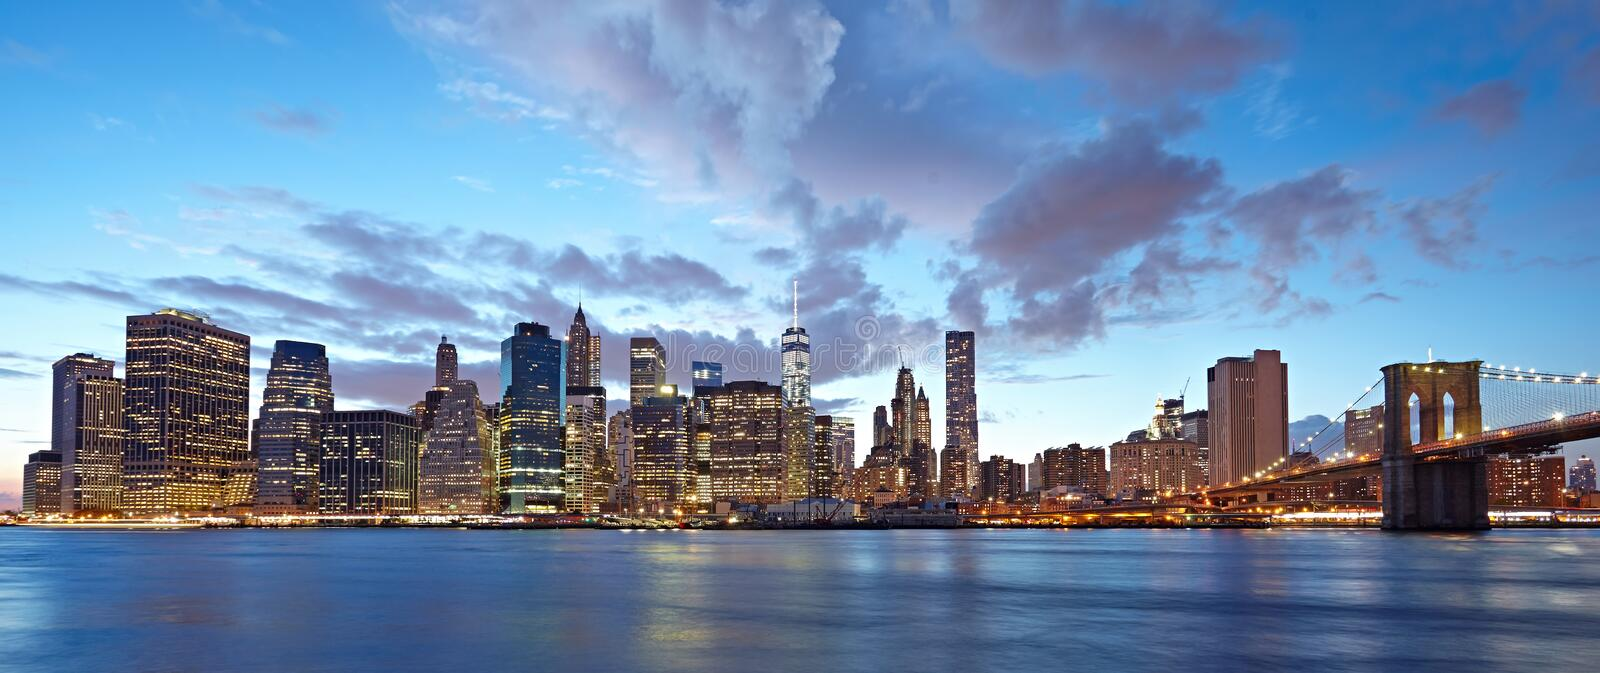 New York City Panorama at night. Manhattan at night. stock photography